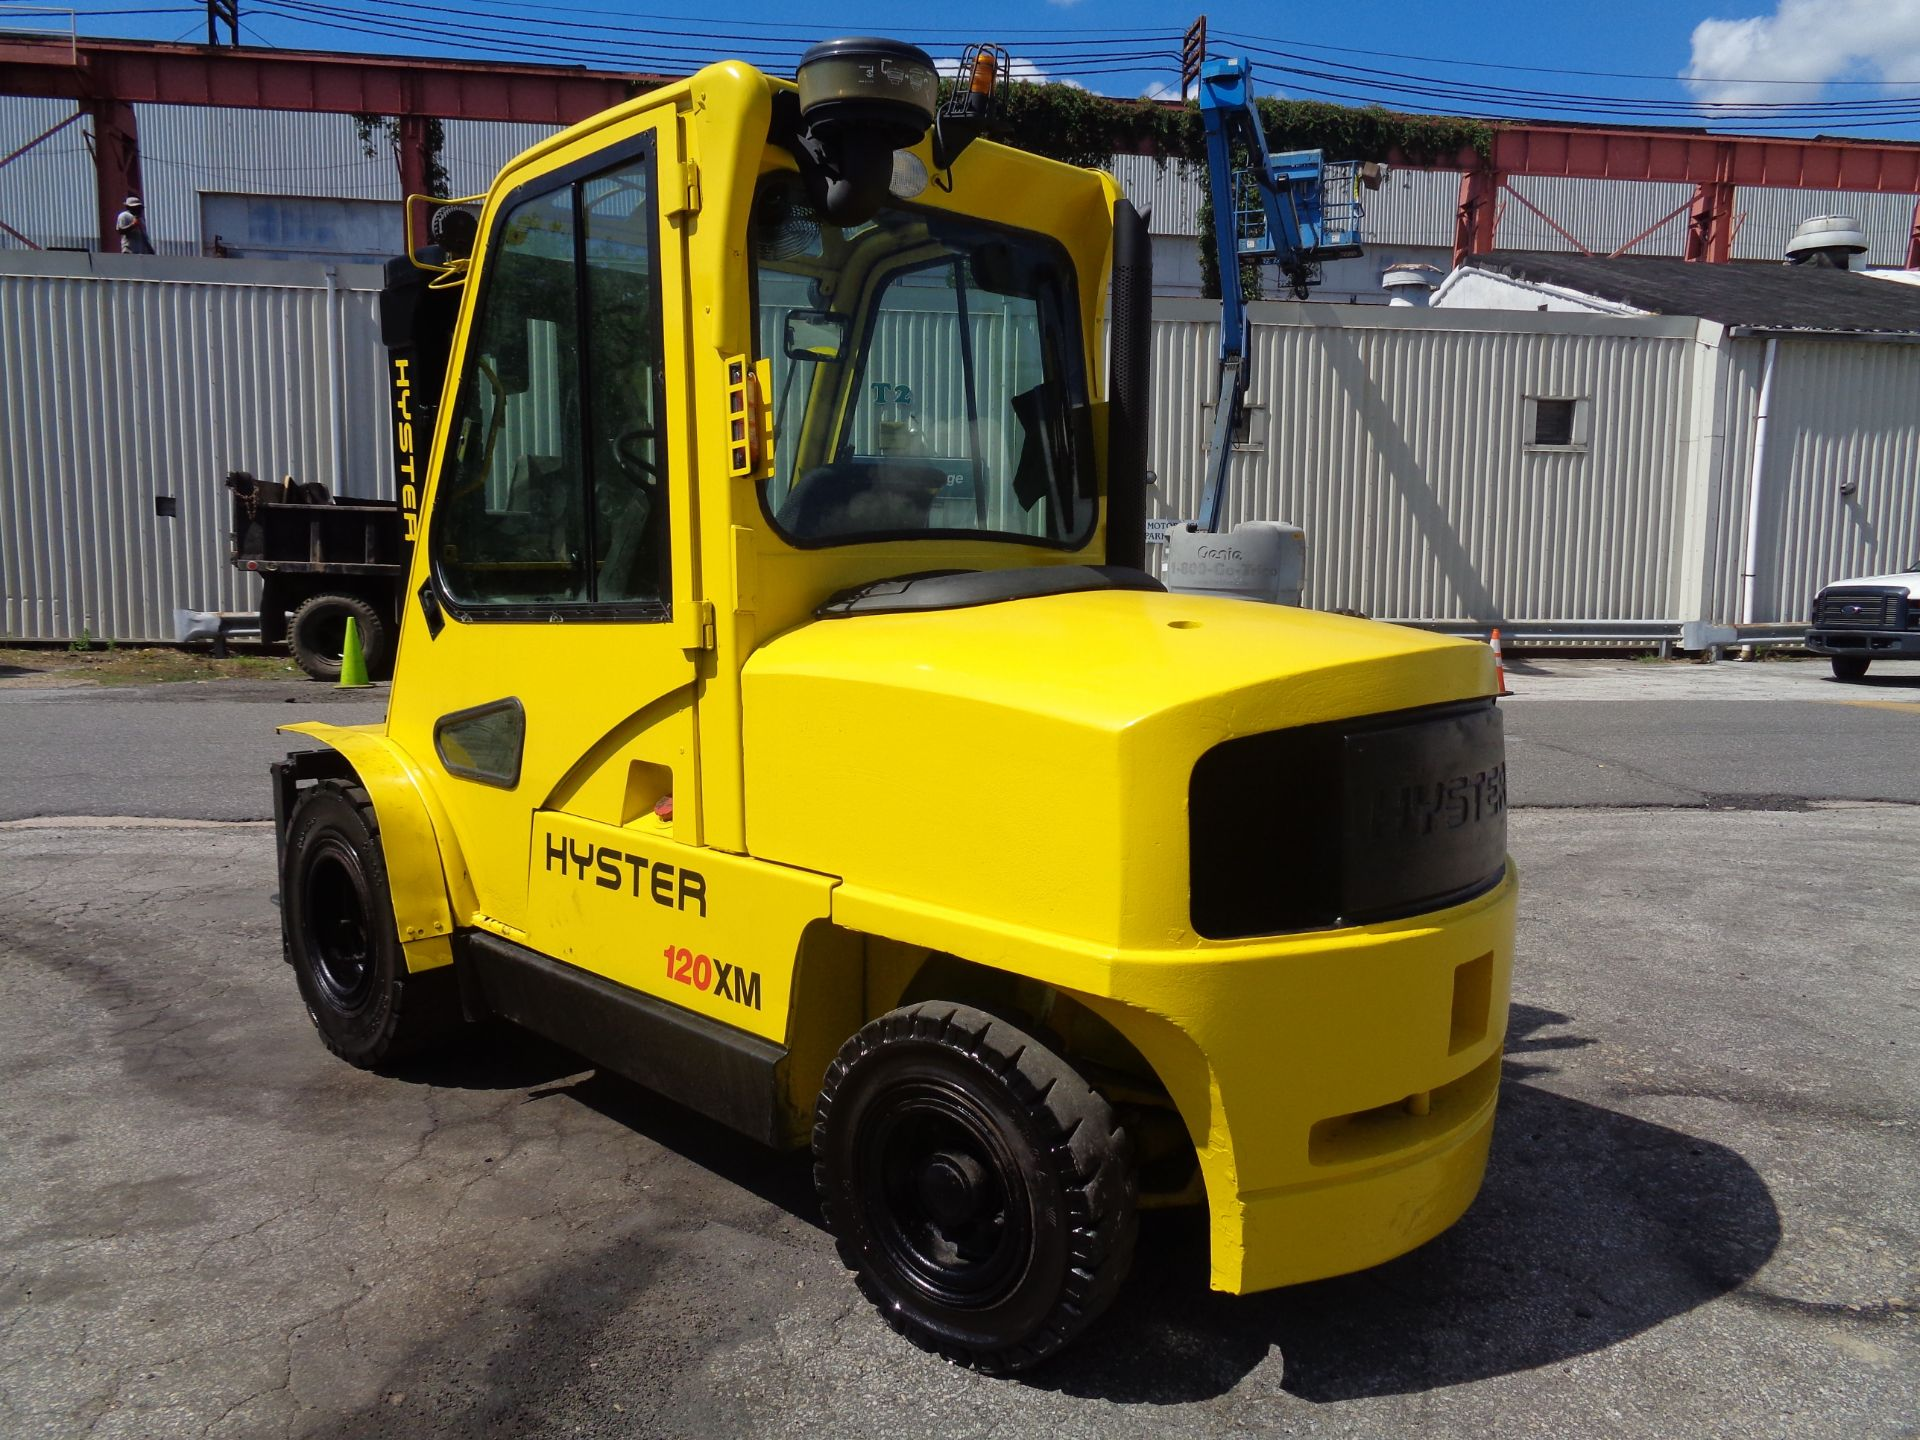 Hyster H120XL 12,000lb Forklift - Image 10 of 15